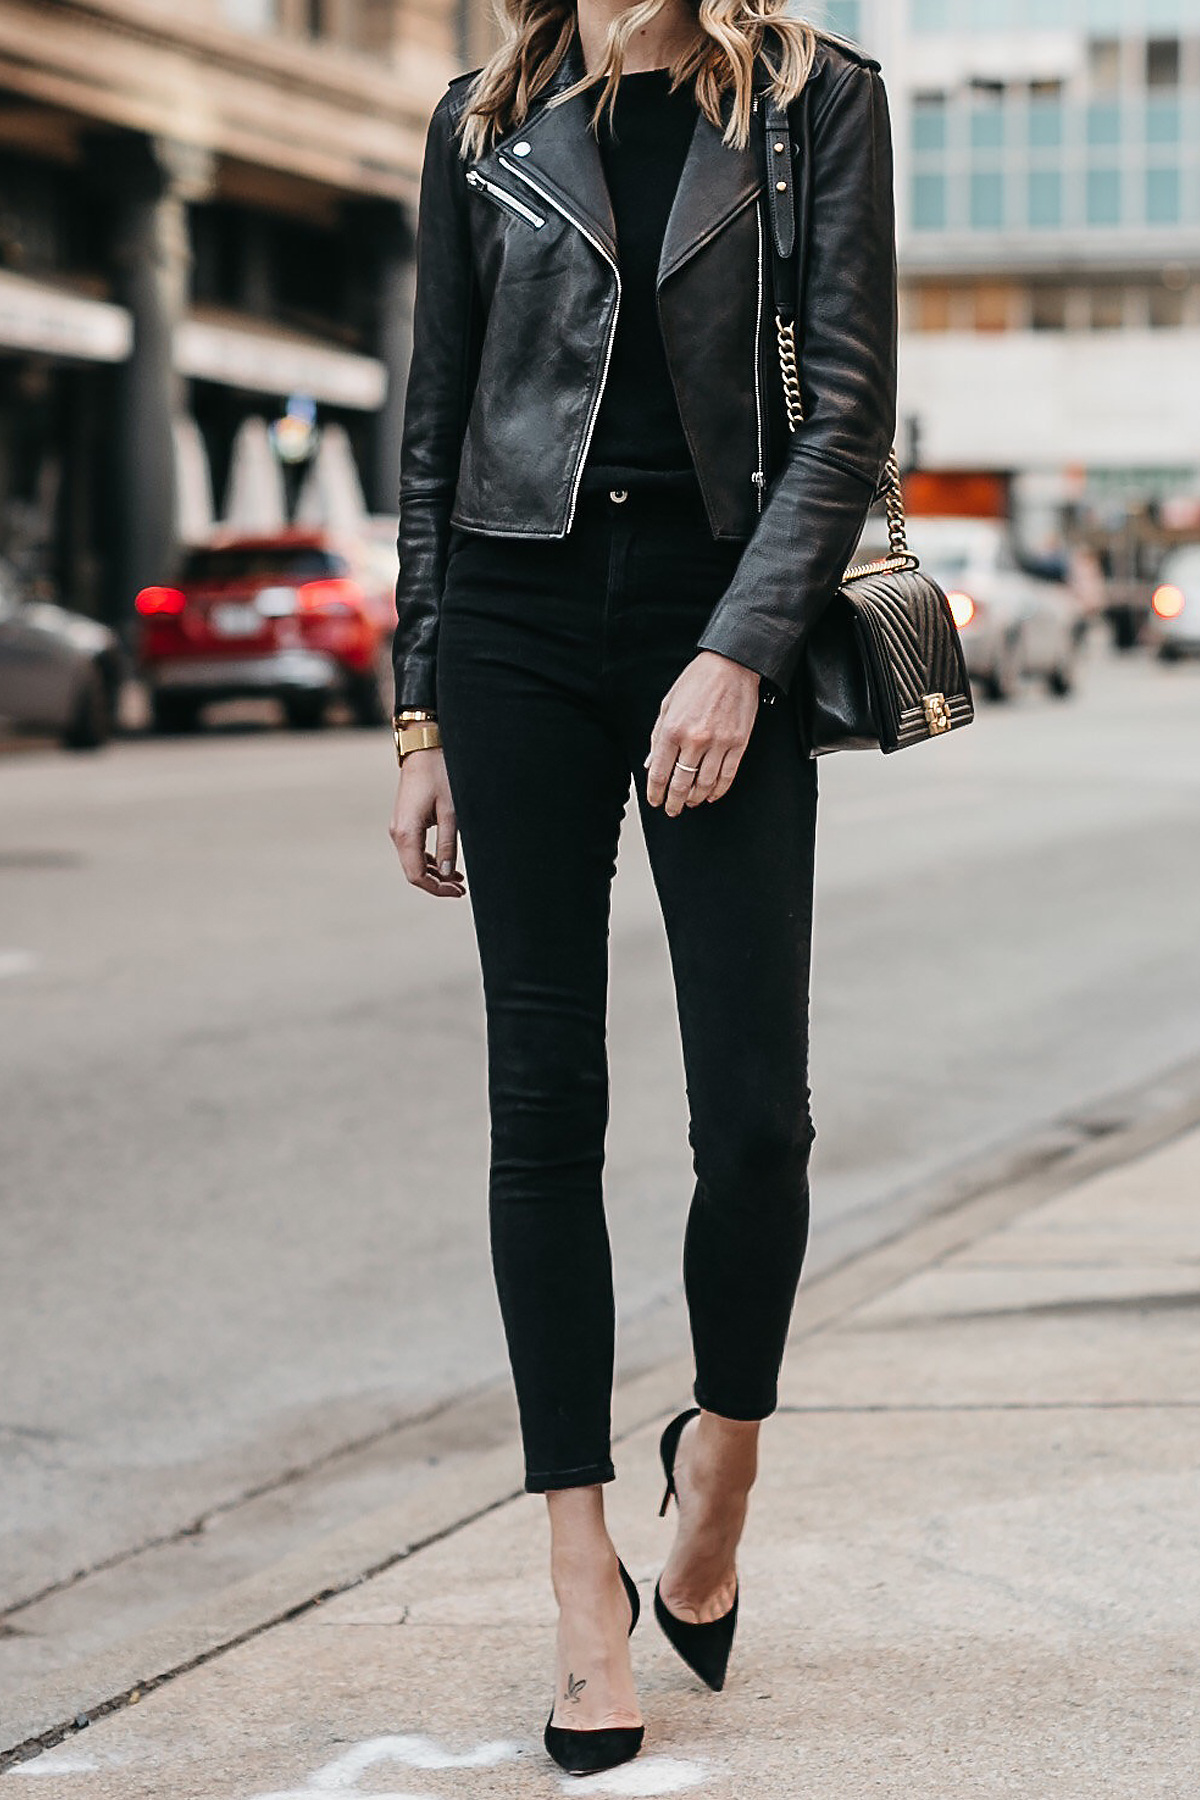 Club Monaco Black Leather Jacket Black Sweater Black Skinny Jeans Black Pumps Chanel Boy Bag Fashion Jackson Dallas Blogger Fashion Blogger Street Style